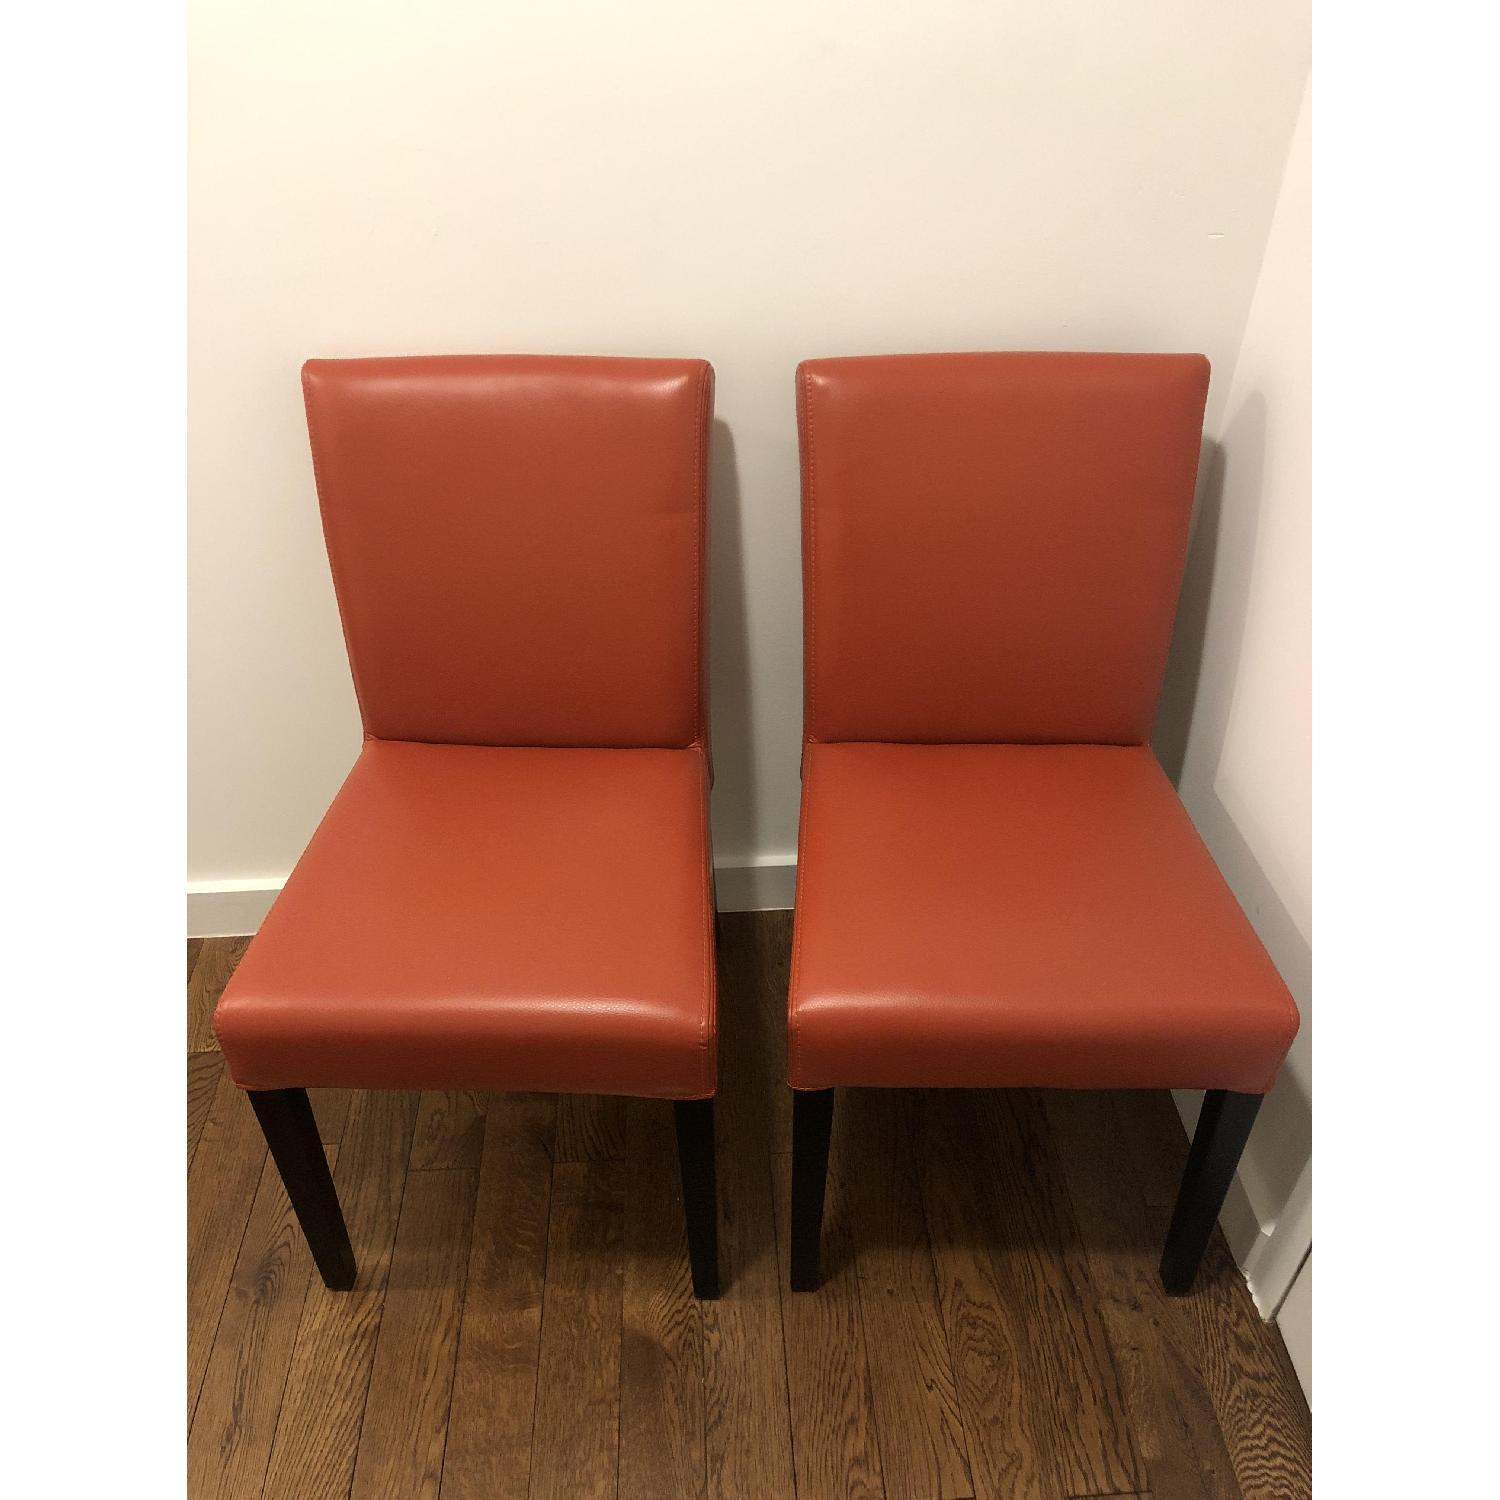 Crate & Barrel Lowe Persimmon Dining Chairs - image-2